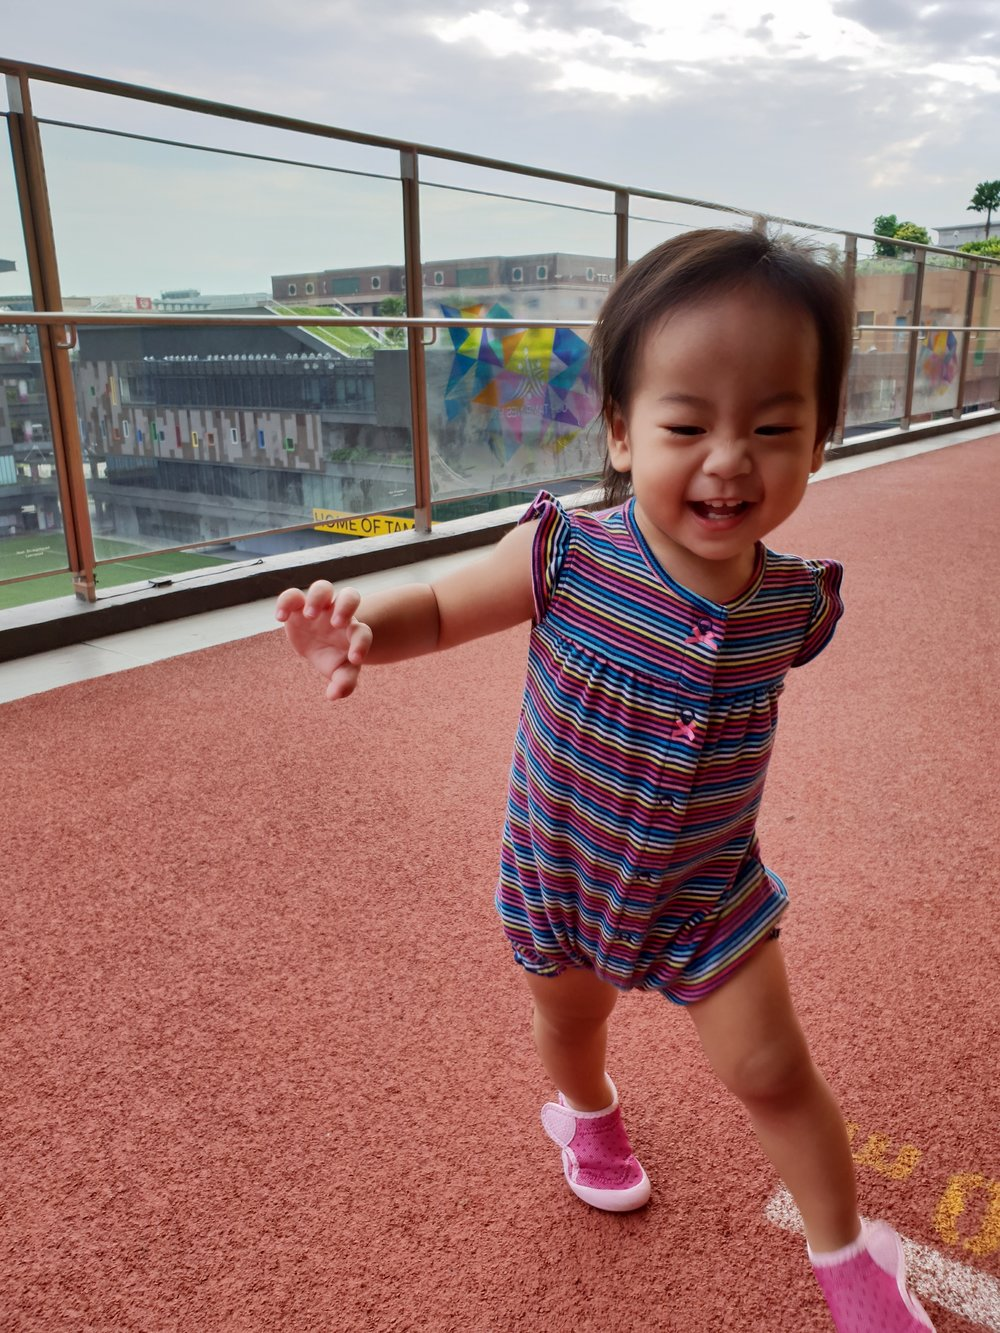 ADELINA K. THIARA  Say hello my daughter, Annabeth! This cutie is my #2 and she has brought me so much joy and positivity every day. Annabeth loves running and releasing her little bundles of energy at Our Tampines Hub, so you could often find her having fun at either the Eco Garden or the running tracks.